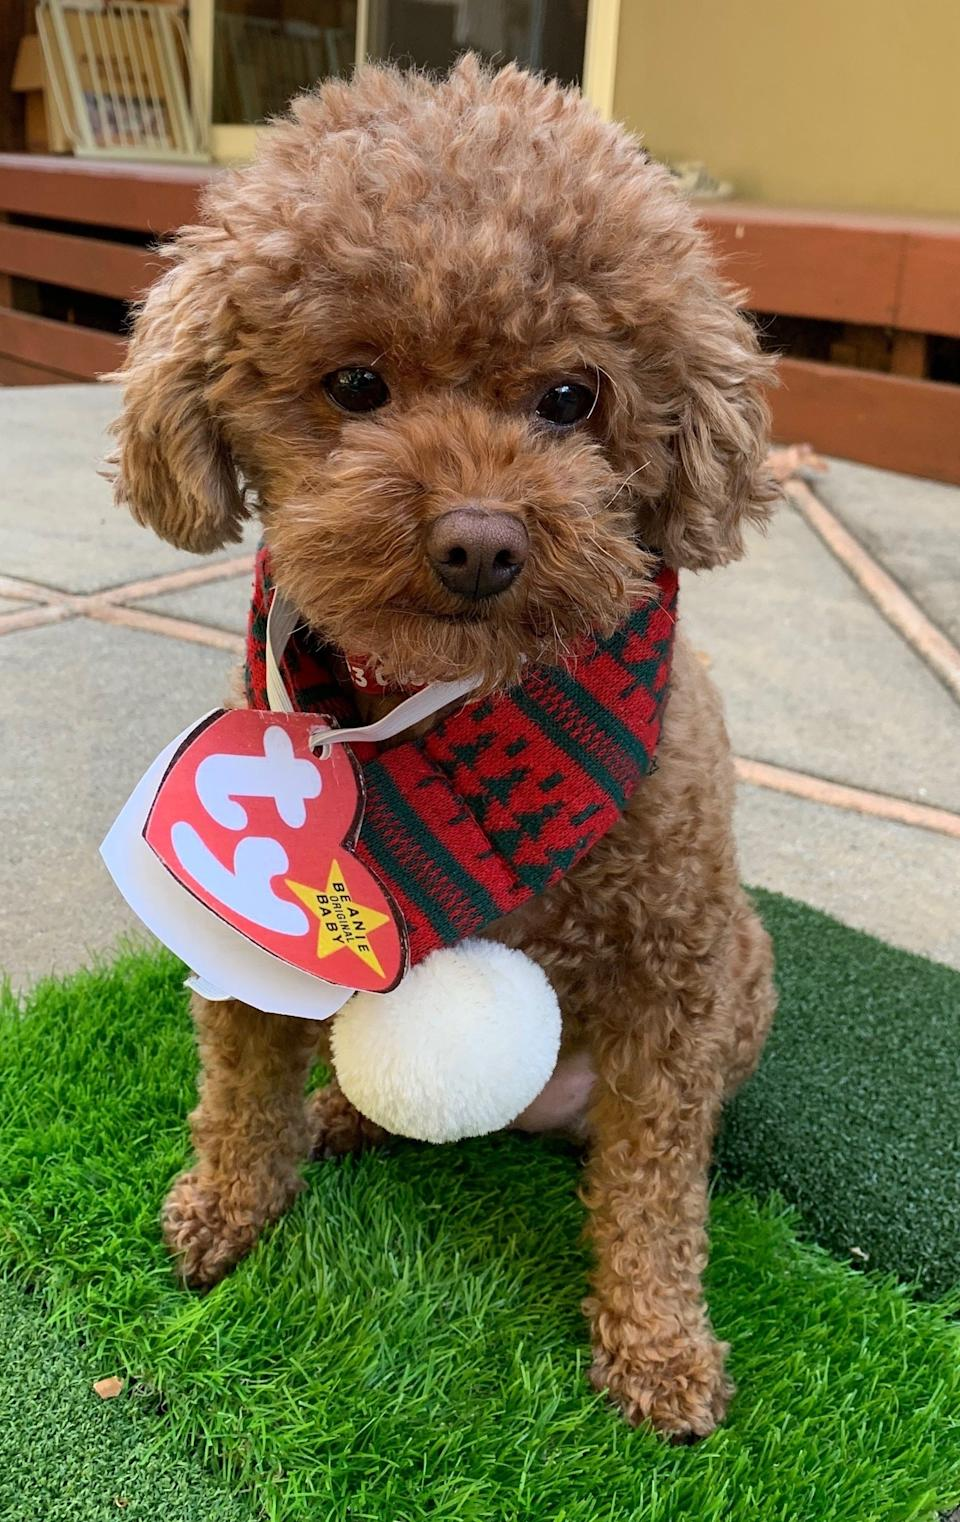 USA TODAY Life and Travel intern Jenna Ryu's family dressed their dog, Coco, up as a very big Beanie Baby. I'd collect Coco any day.